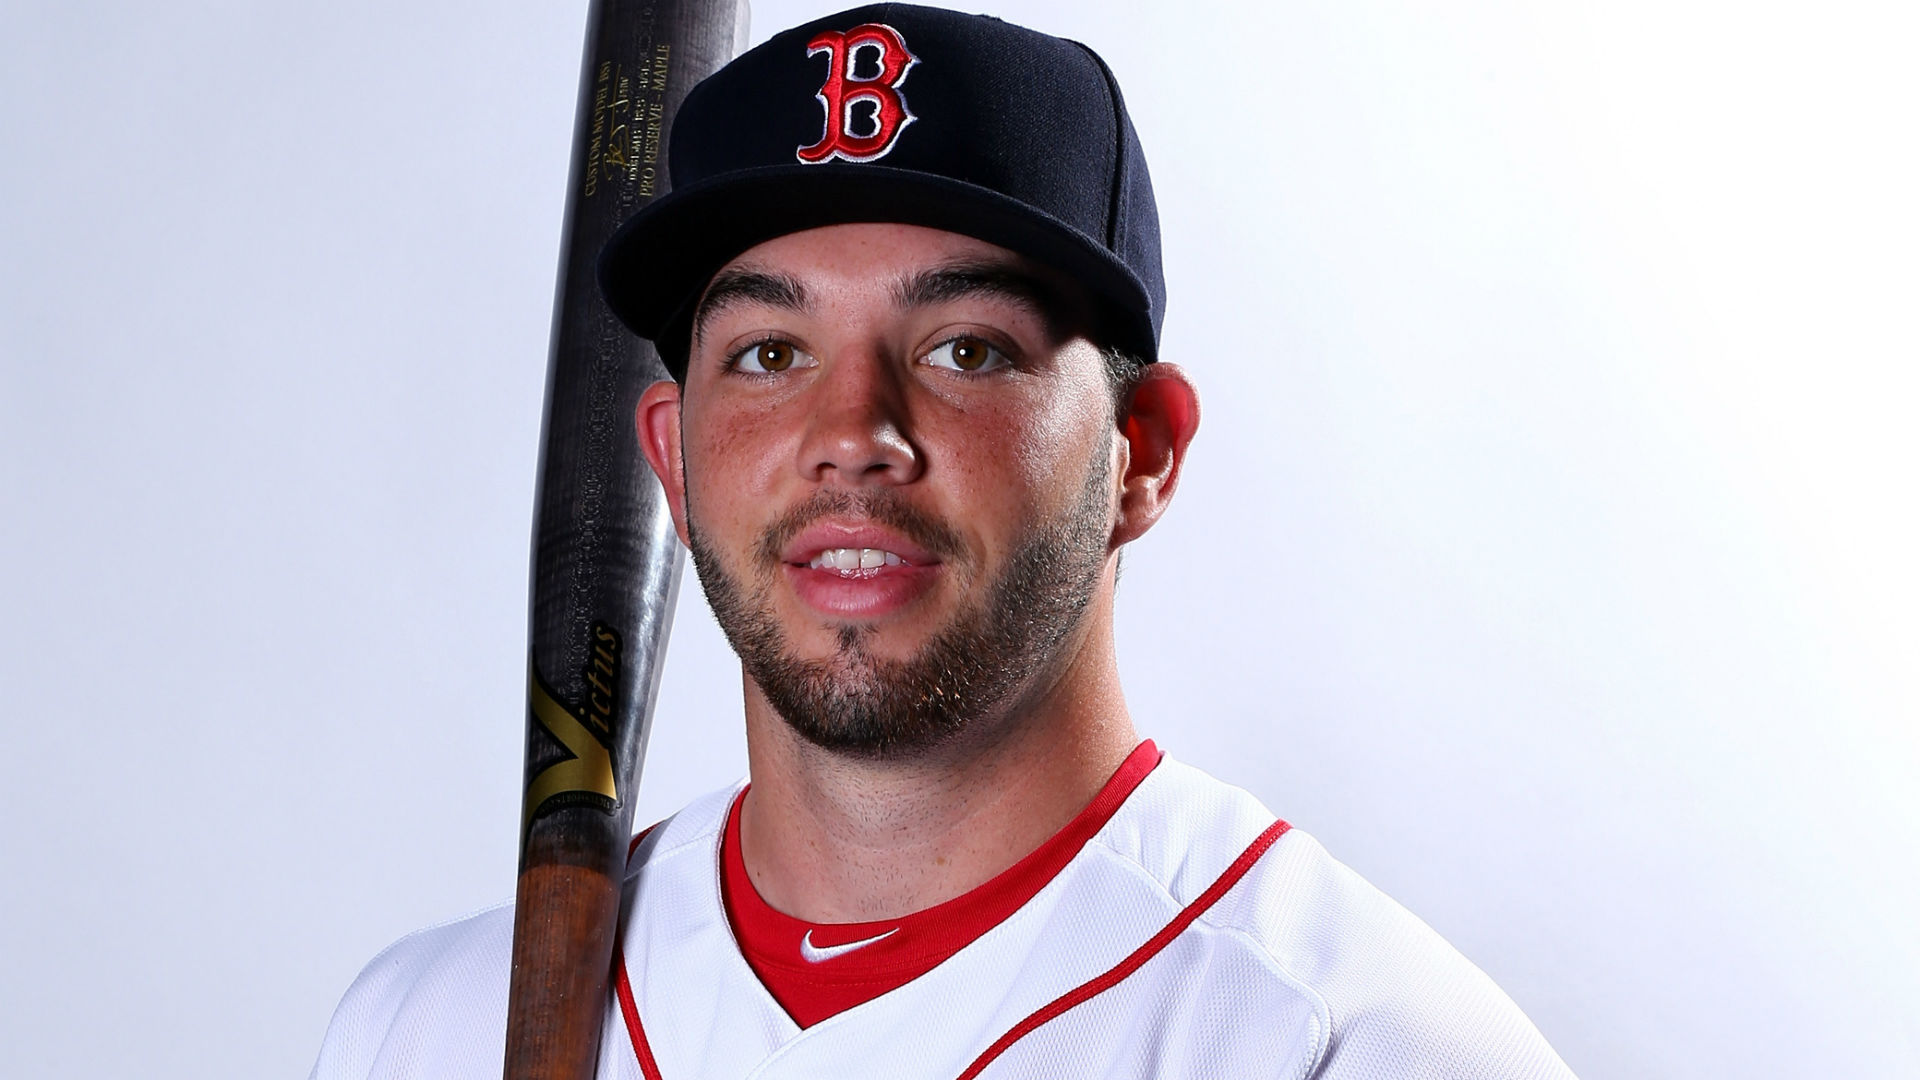 Red Sox call up top prospect Blake Swihart for MLB debut